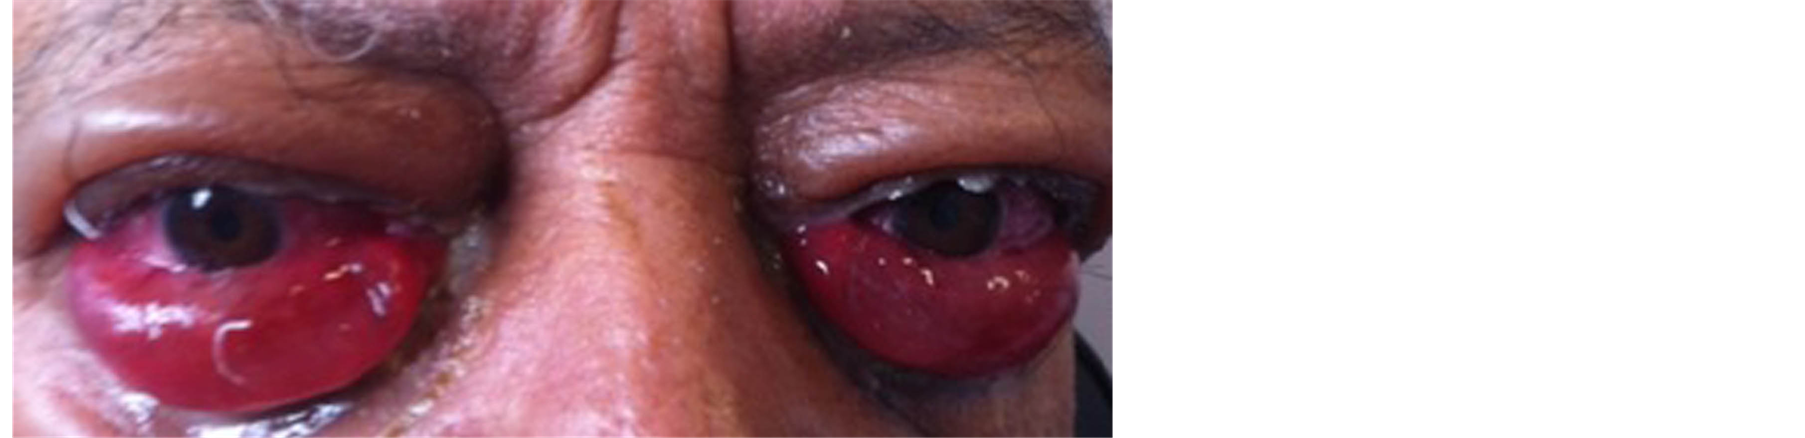 exophthalmos chemosis and visible bilateral conjunctival hyperemia exophthalmos white hypersecretion